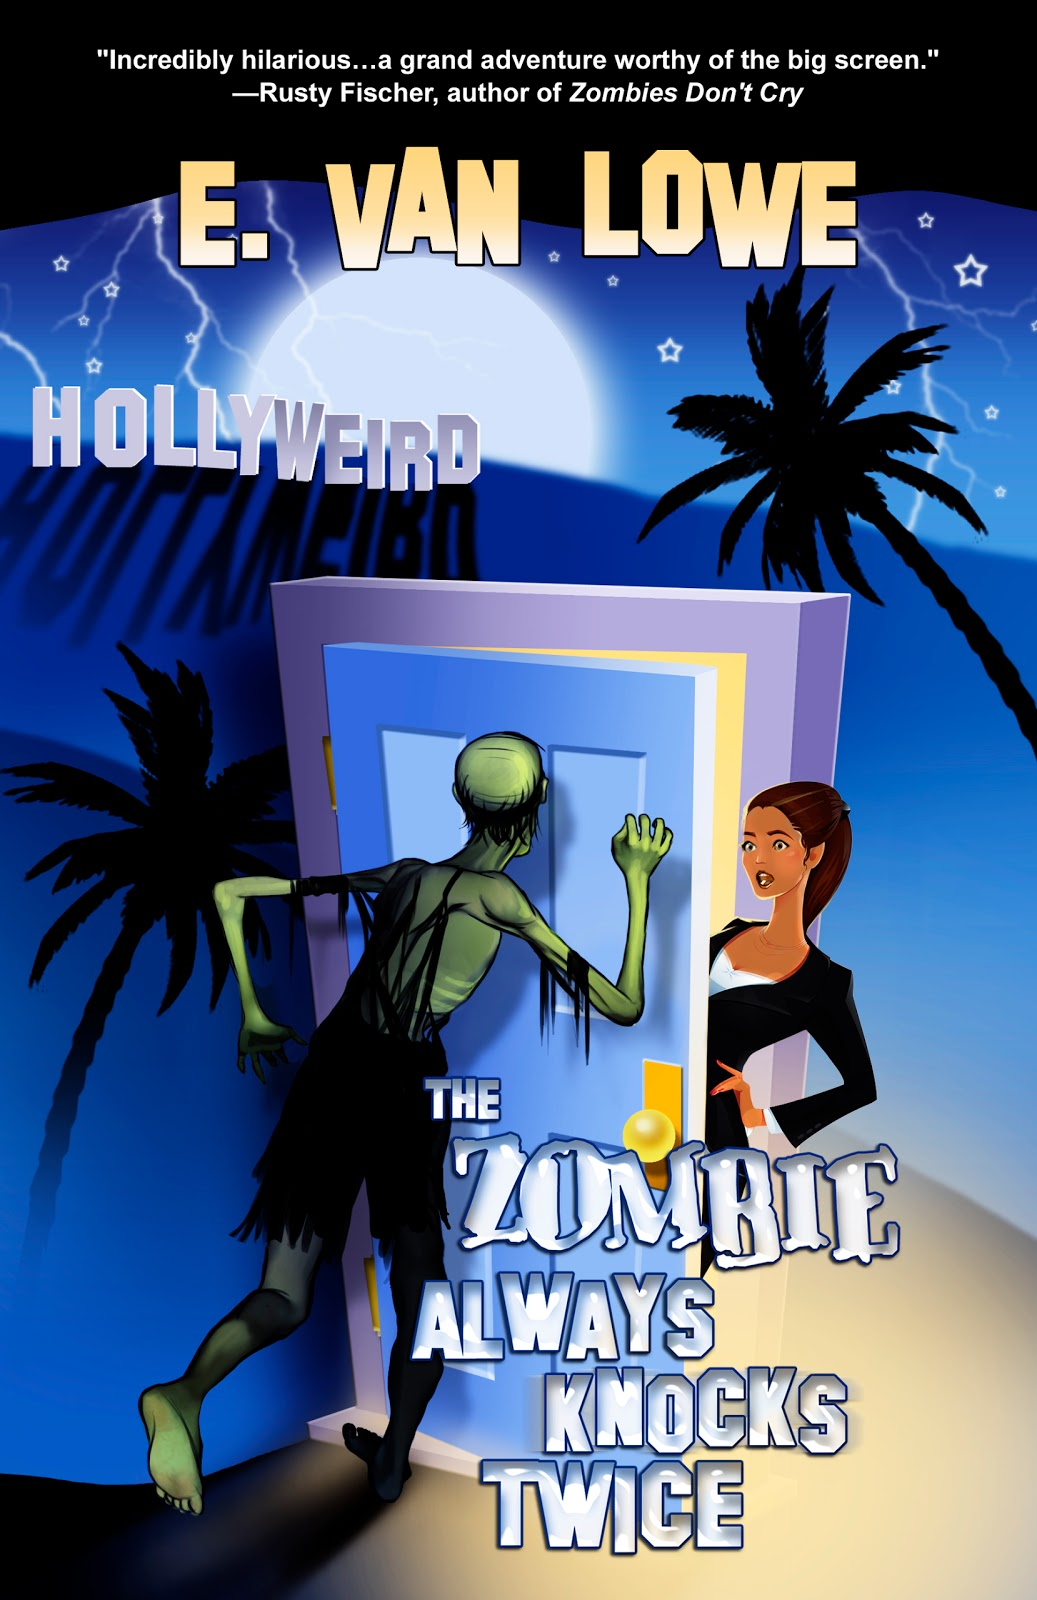 how to turn someone into a zombie sims 3